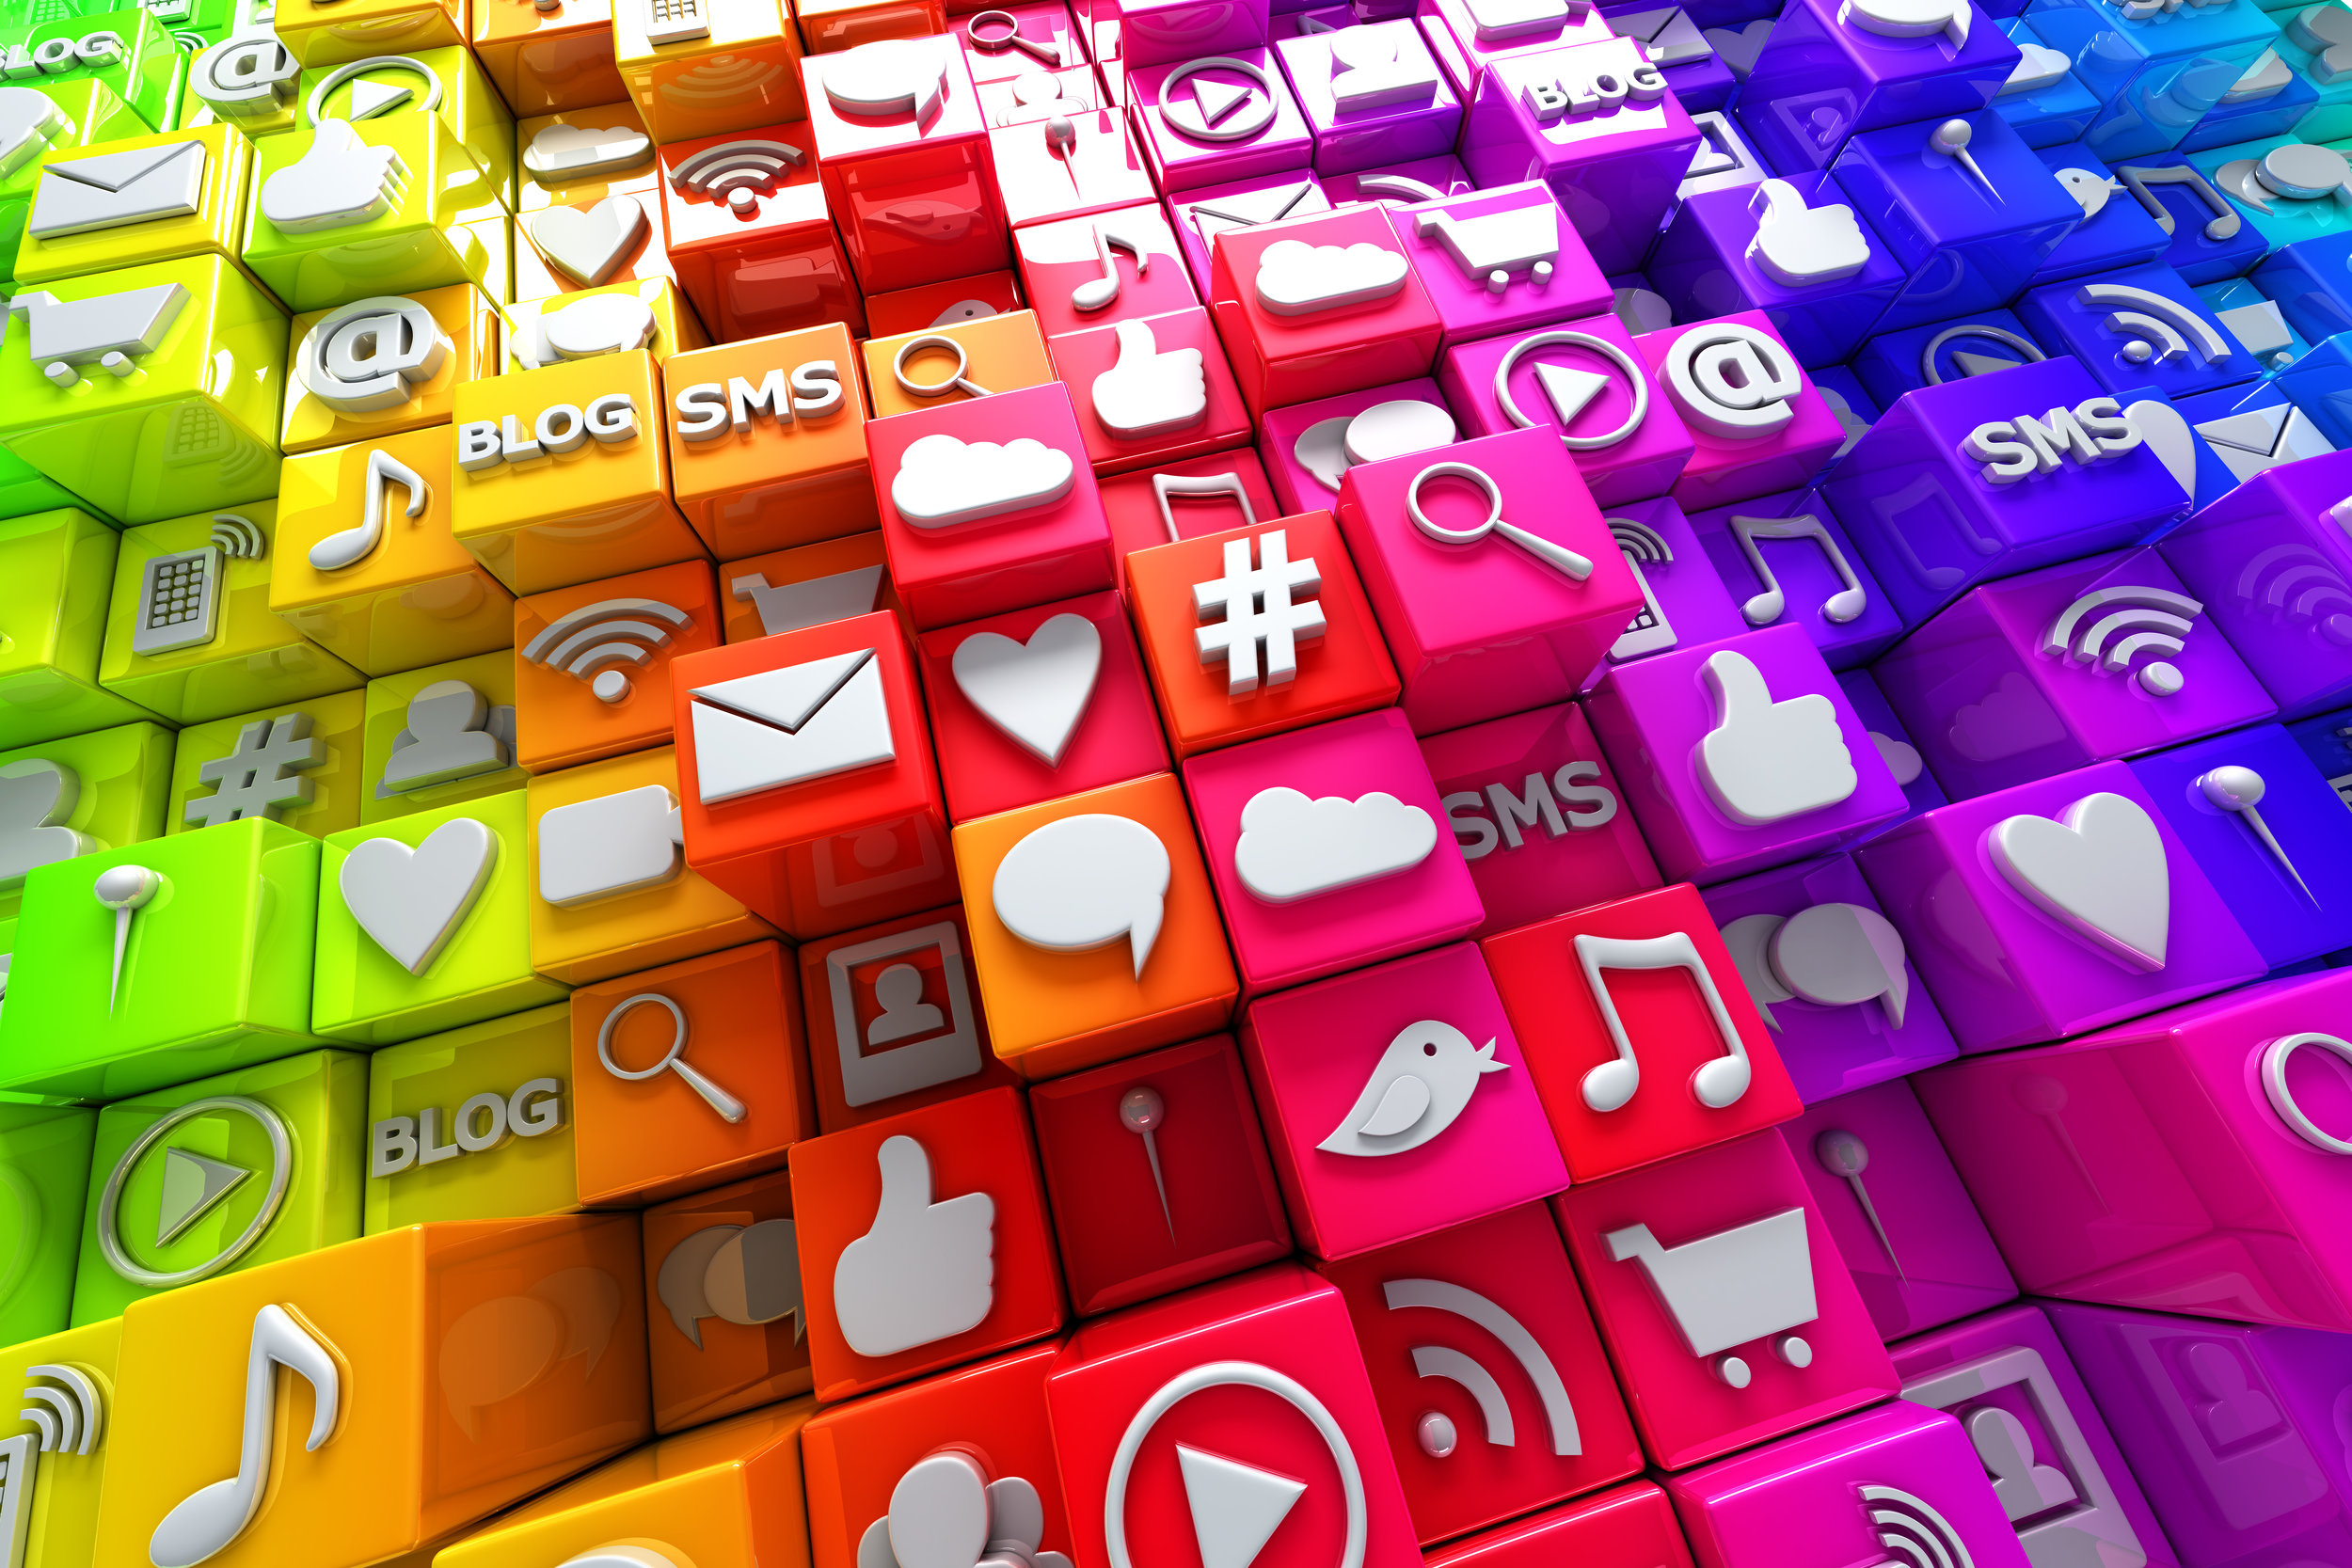 Social Media Marketing - Taking Brands to New Heights!